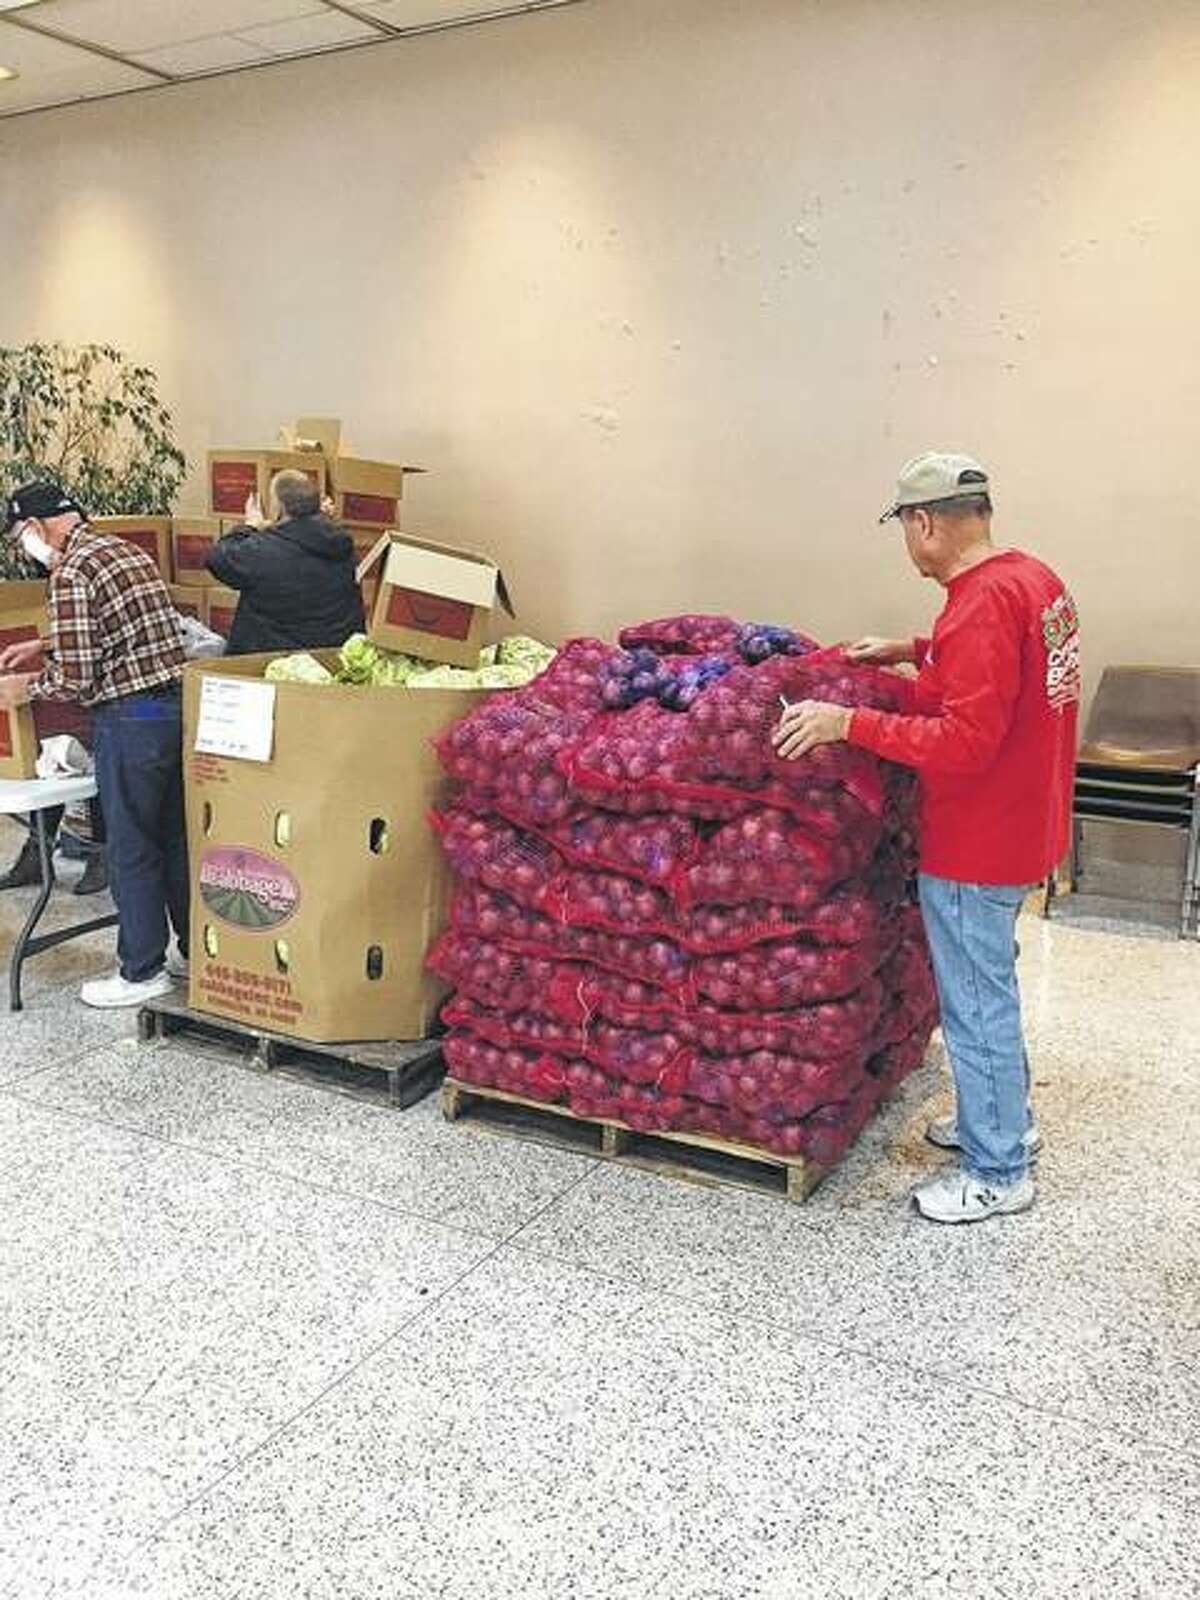 Volunteers help sort loads of potatoes, cabbage and other food items.